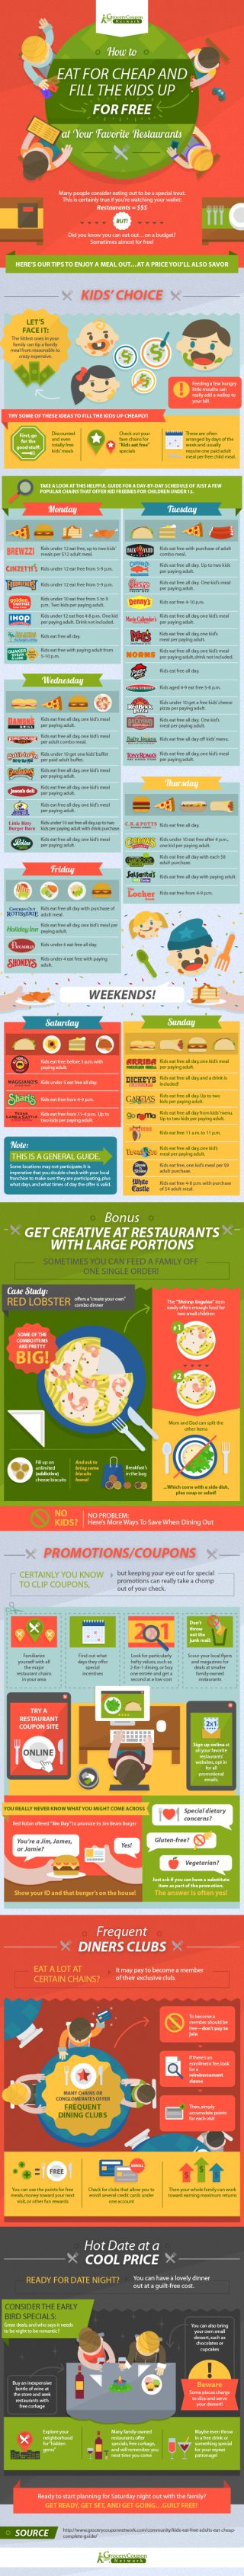 "Restaurants know that feeding kids for free brings in parents. Many restaurants have a ""kids eat free"" night. This infographic tracks those ..."